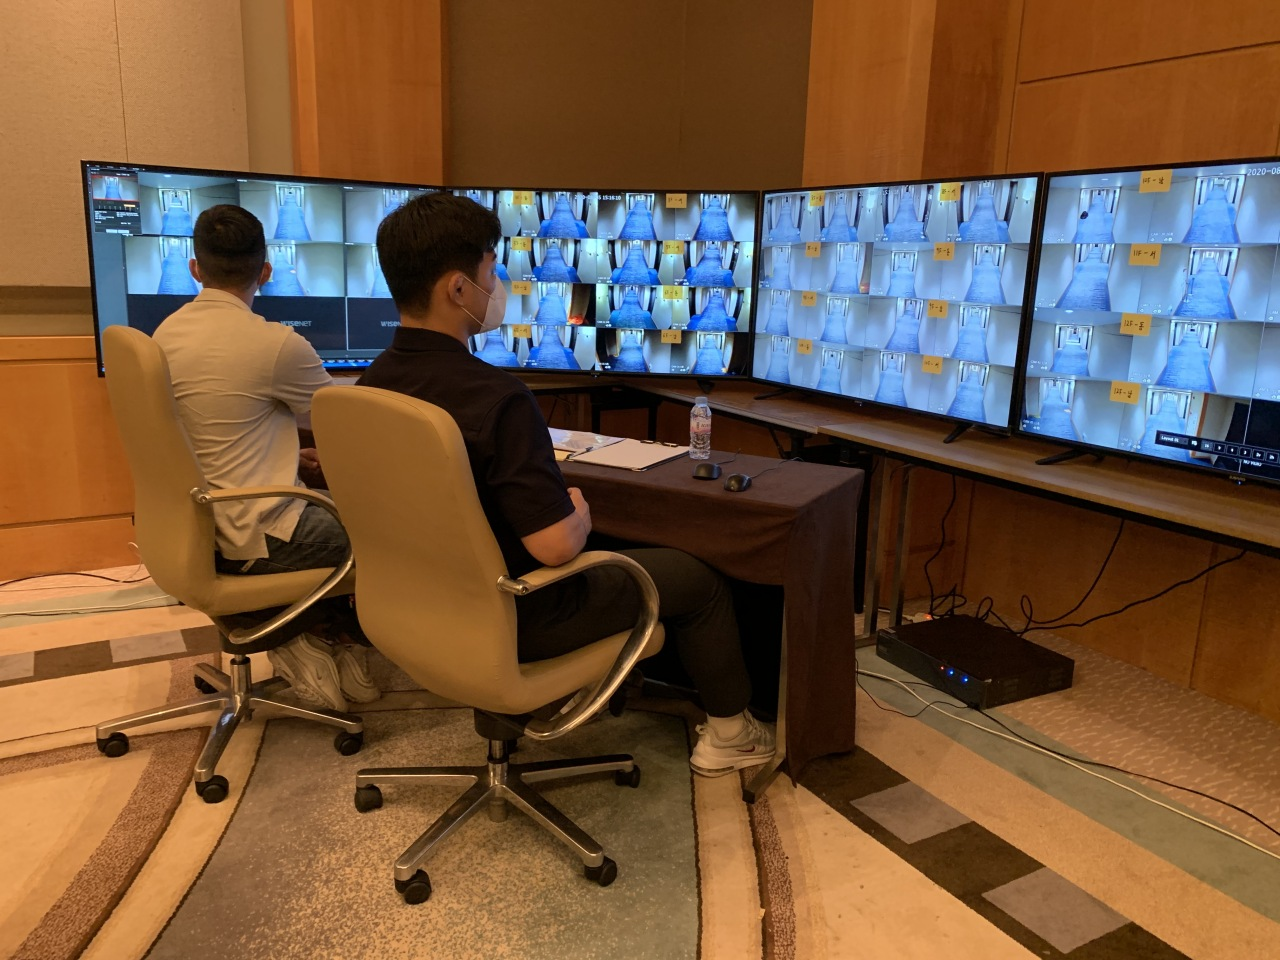 In the situation room, military officials work round the clock in two-hour shifts and monitor the hallways to make sure there are no quarantine breaches.